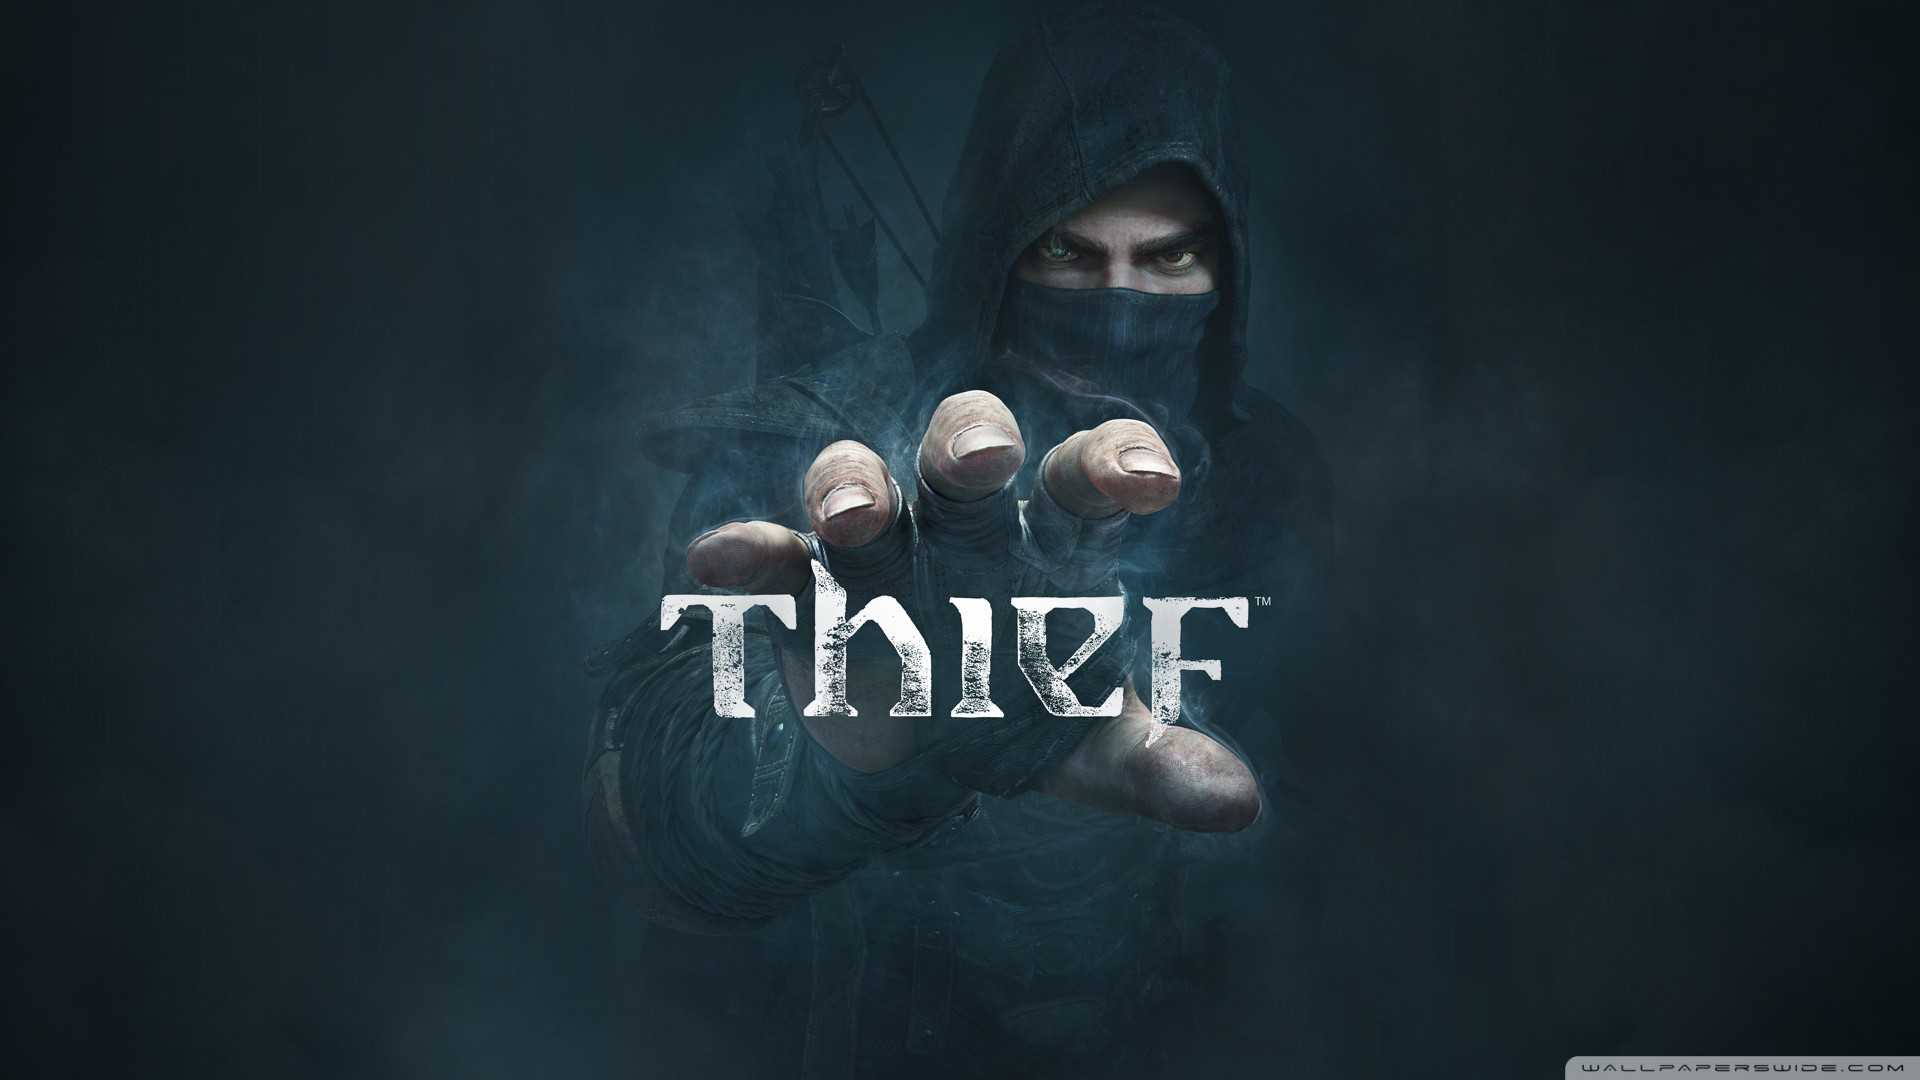 Thief 2014 HD Wide Wallpaper for Widescreen